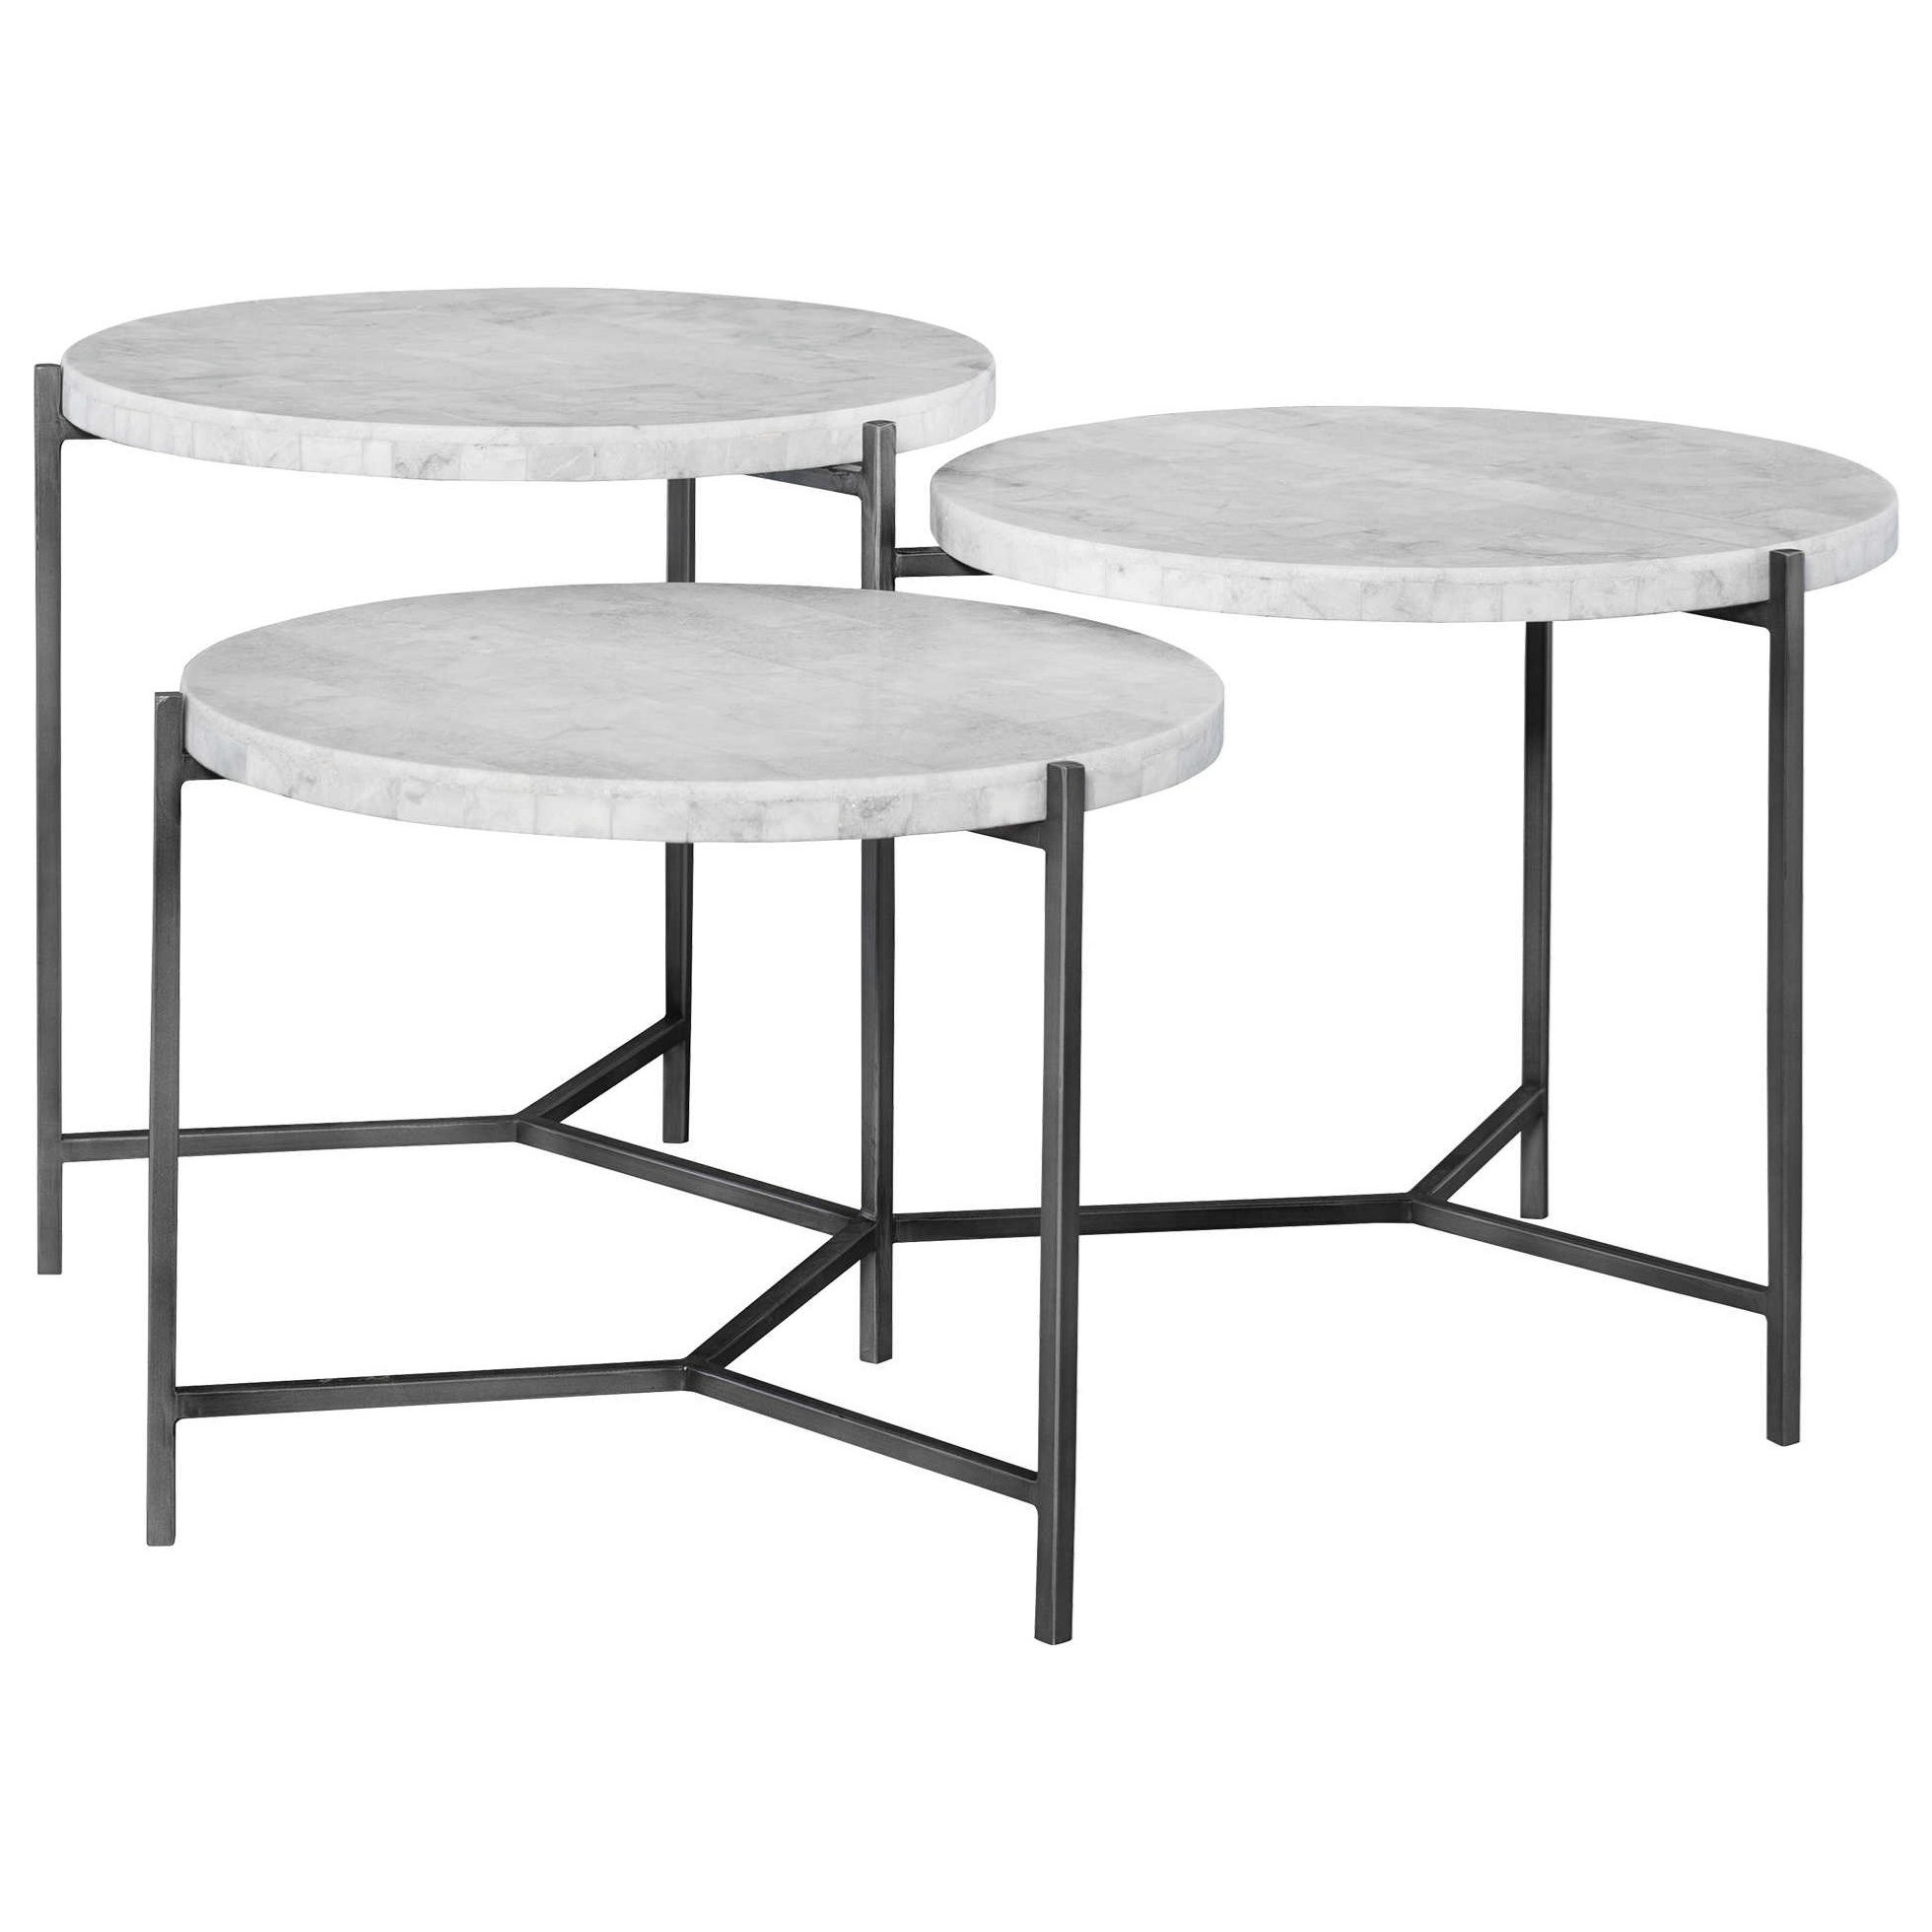 Accent Furniture - Occasional Tables Contarini Tiered Coffee Table by Uttermost at Goffena Furniture & Mattress Center